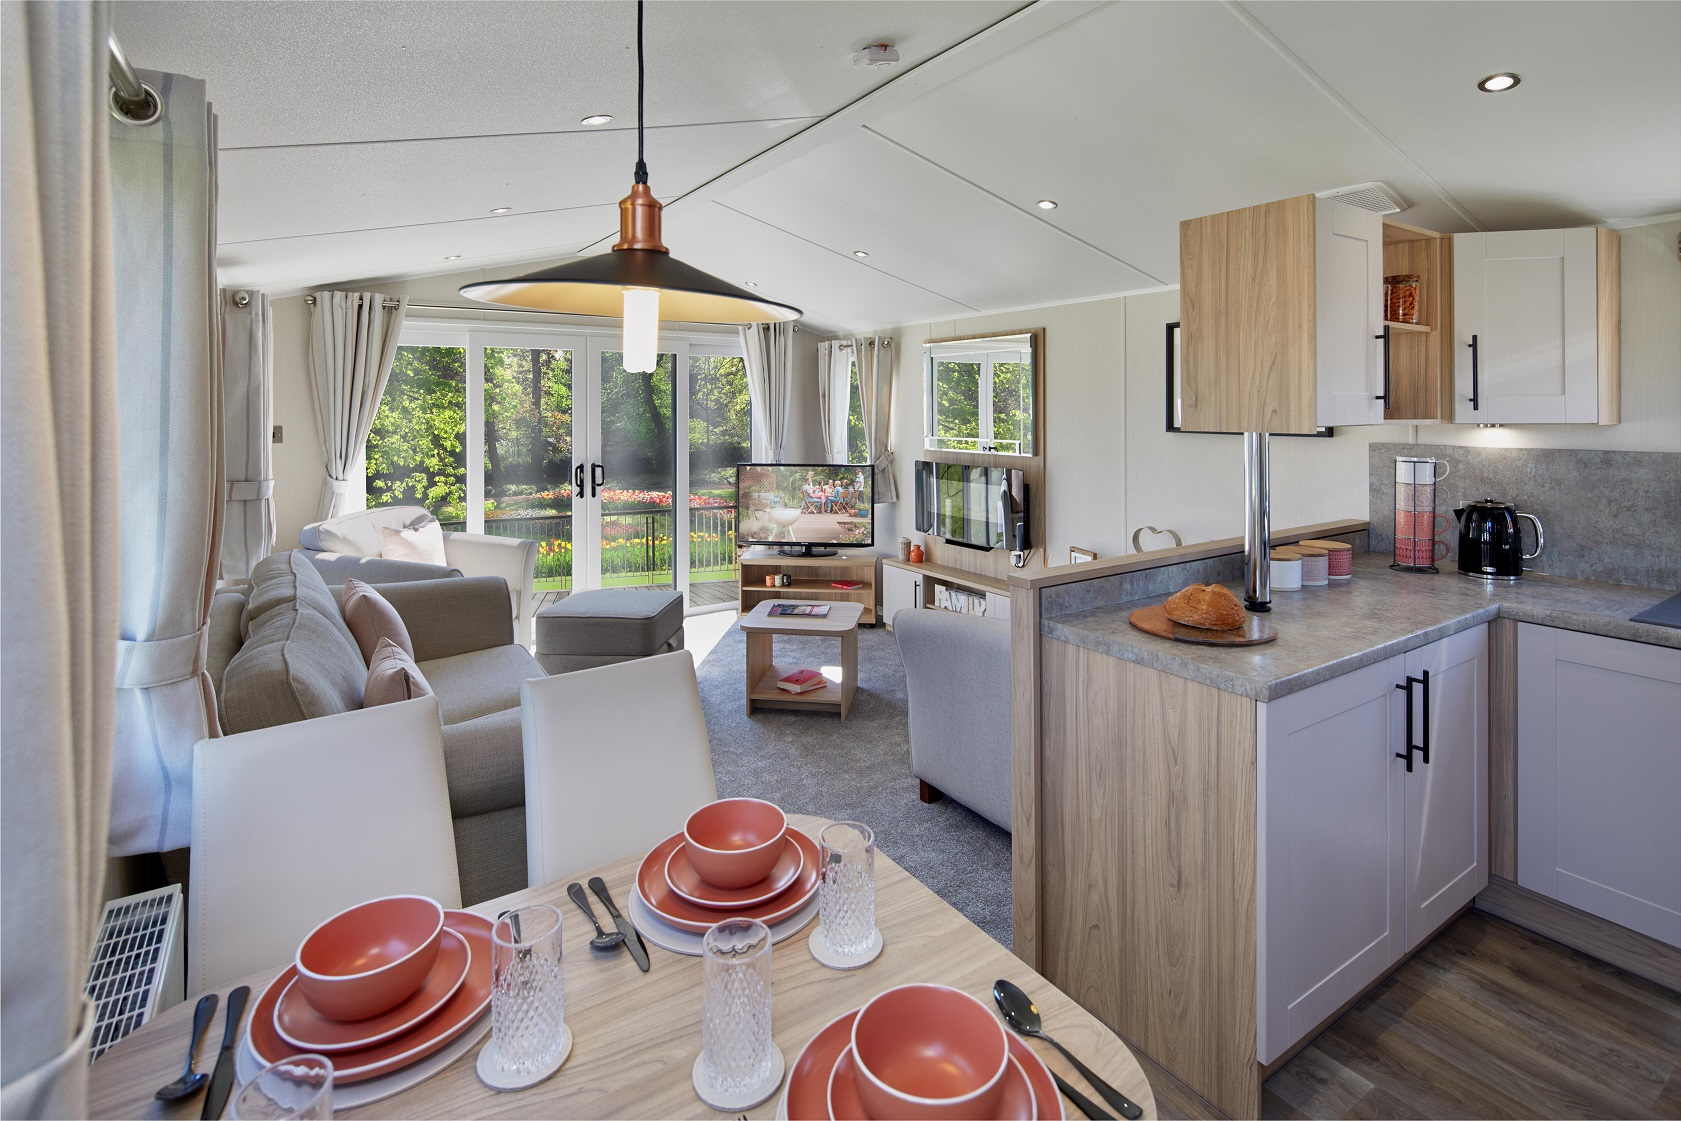 Willerby Manor: New Static Caravans and Holiday Homes for Sale, On Order Large Image 1